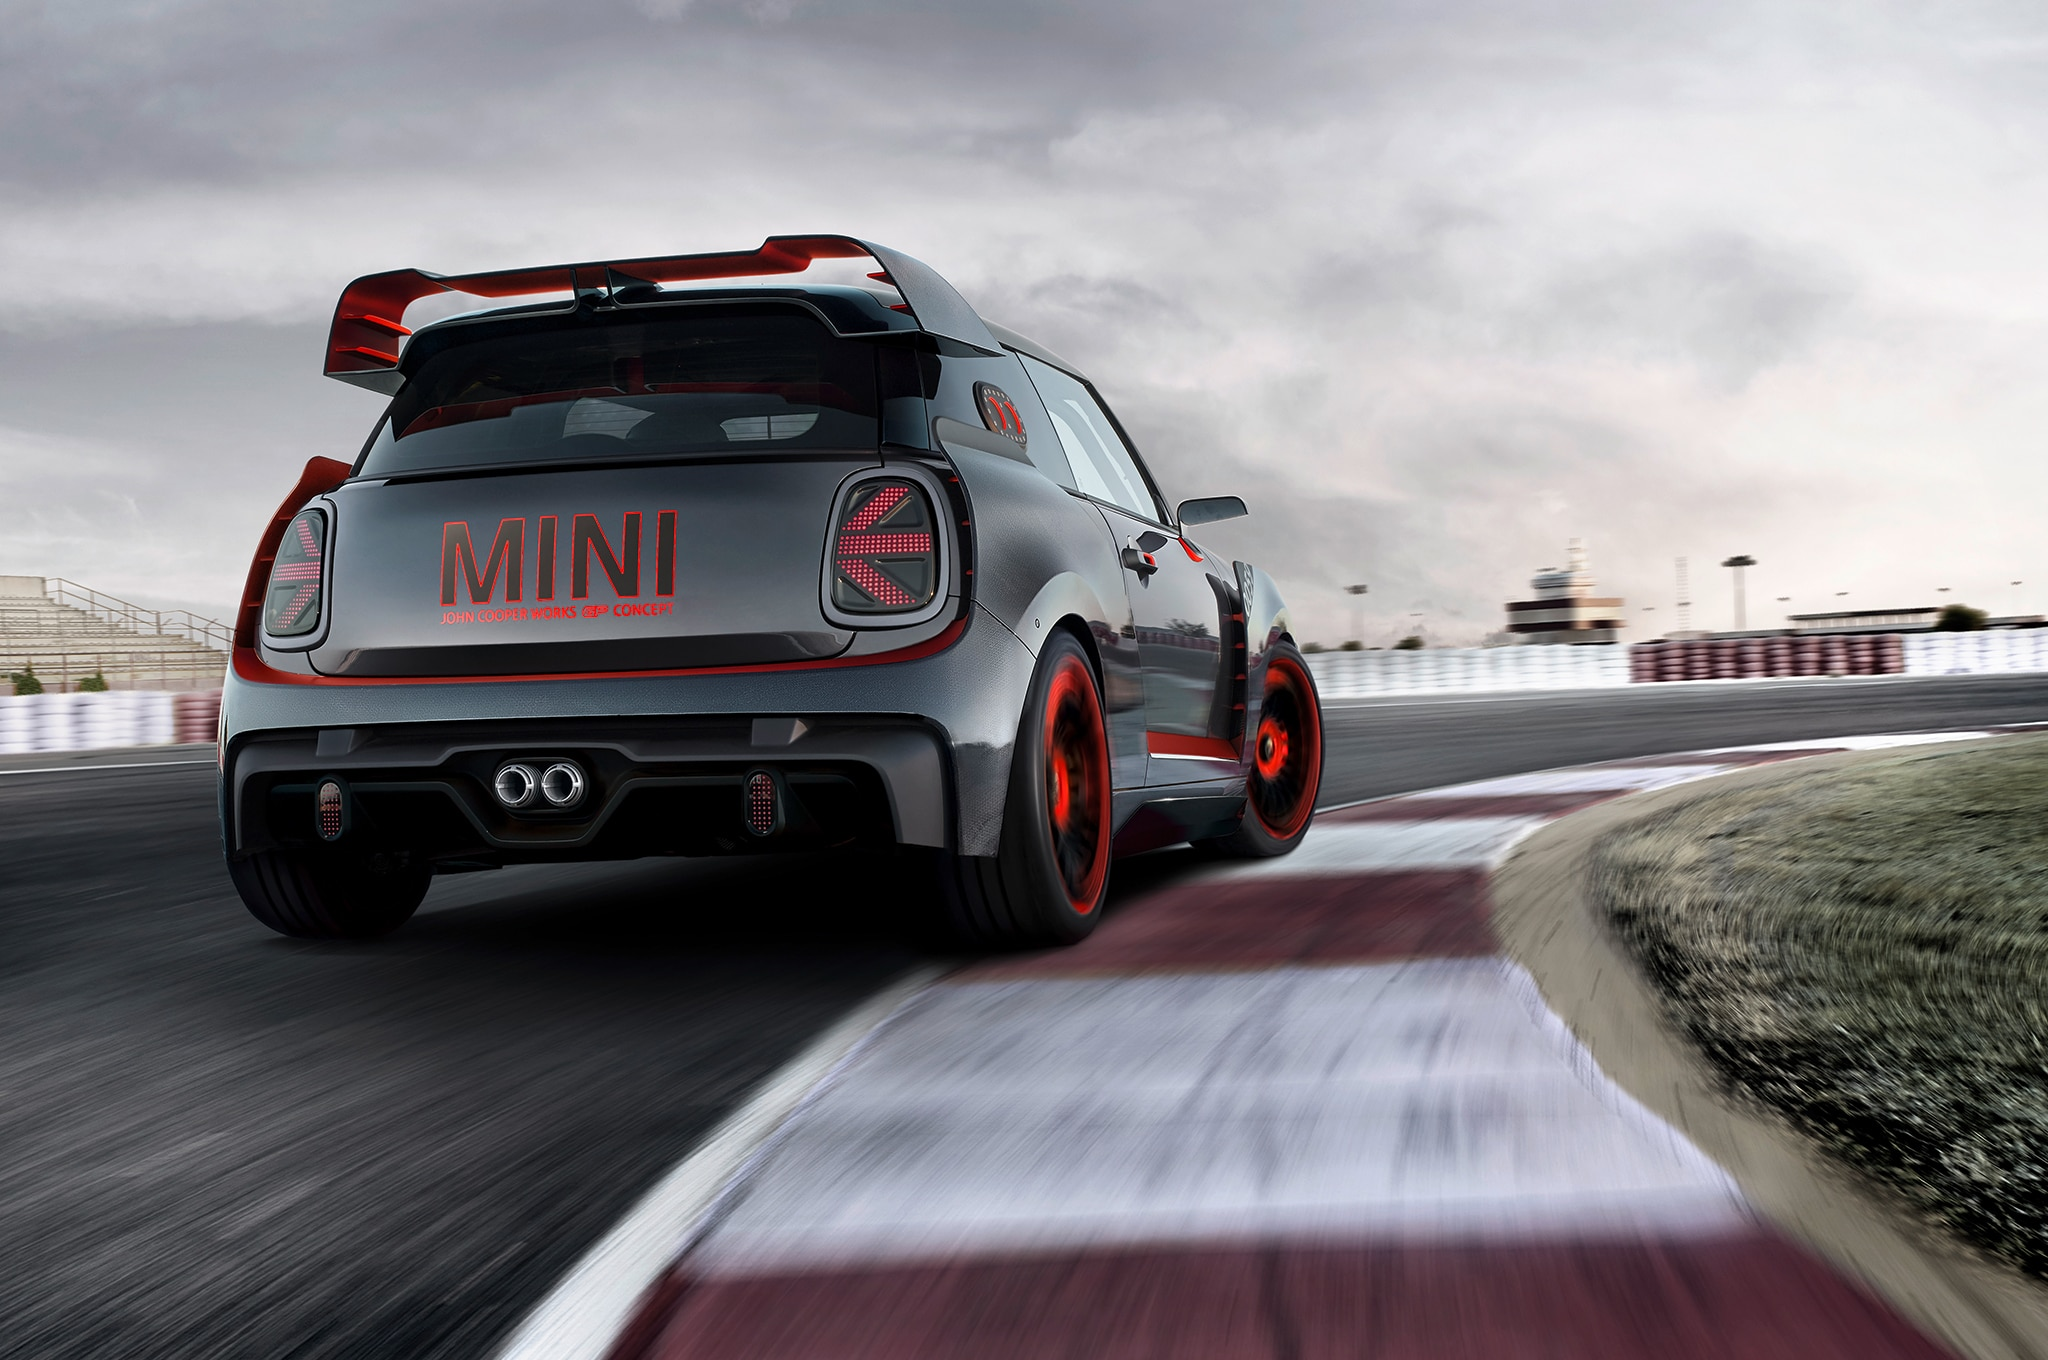 27 New 2020 Mini Cooper Clubman Model